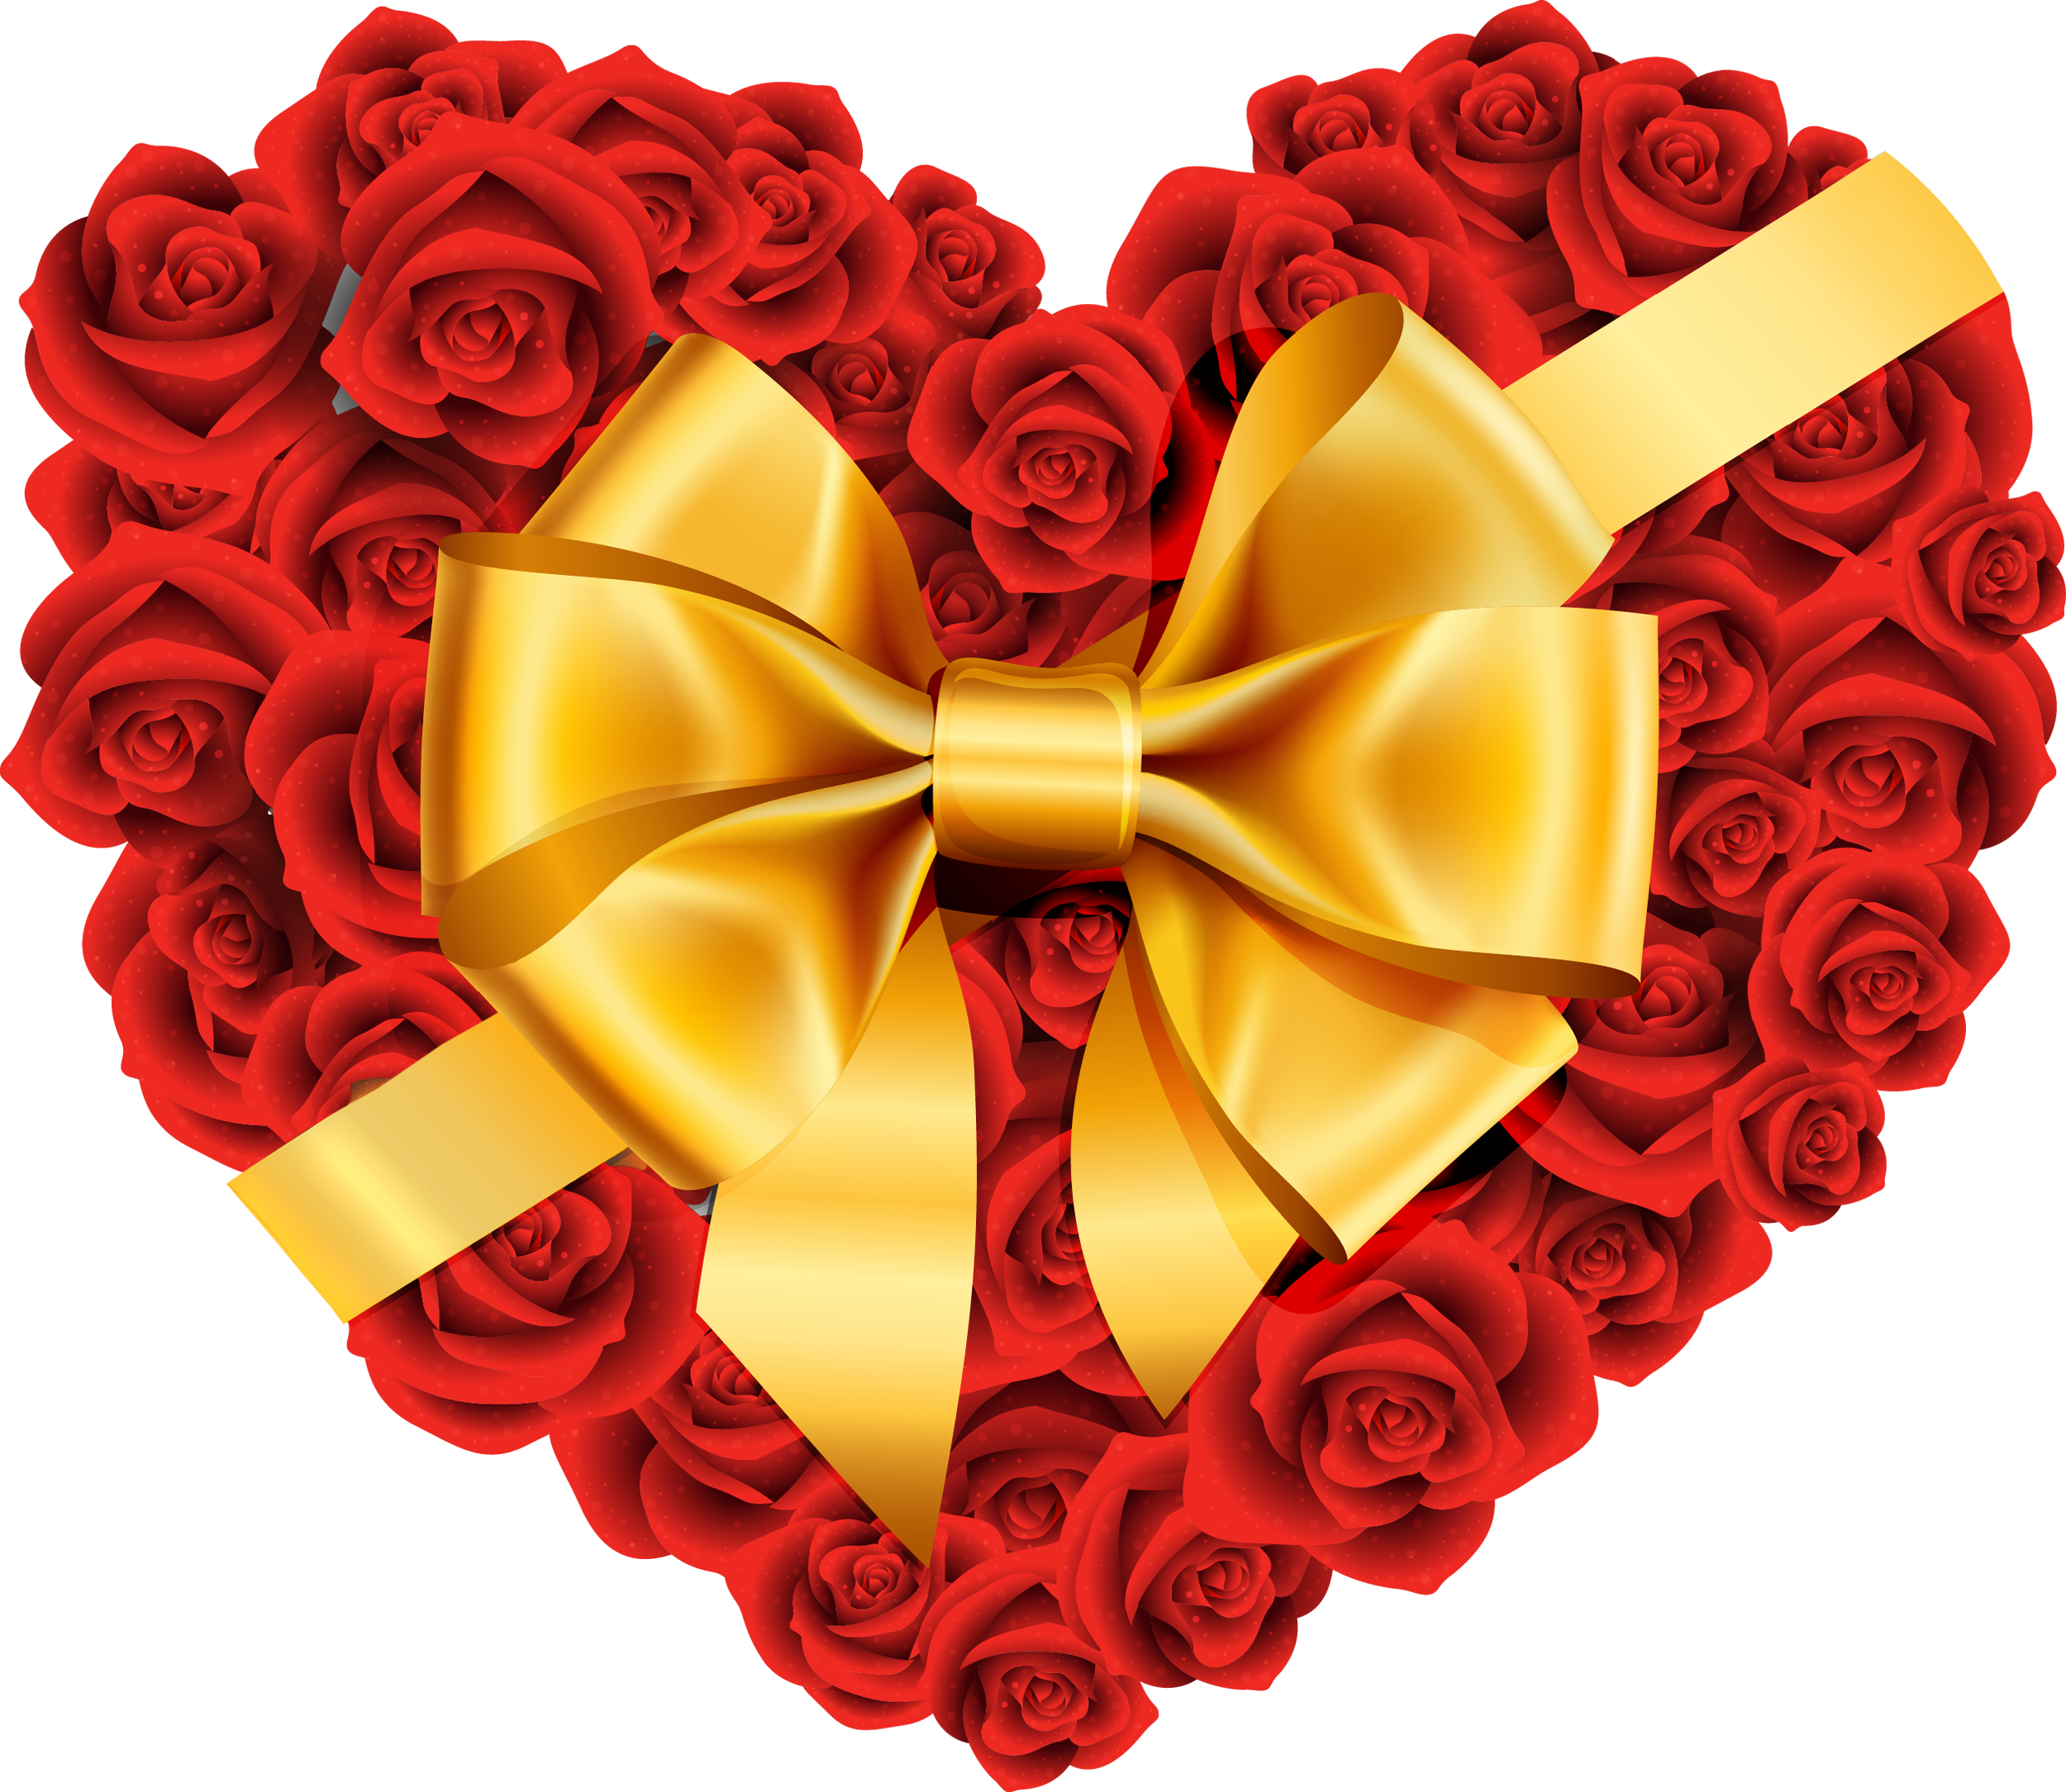 Heart with flower clipart graphic free stock Large Rose Heart with Gold Bow PNG Clipart graphic free stock